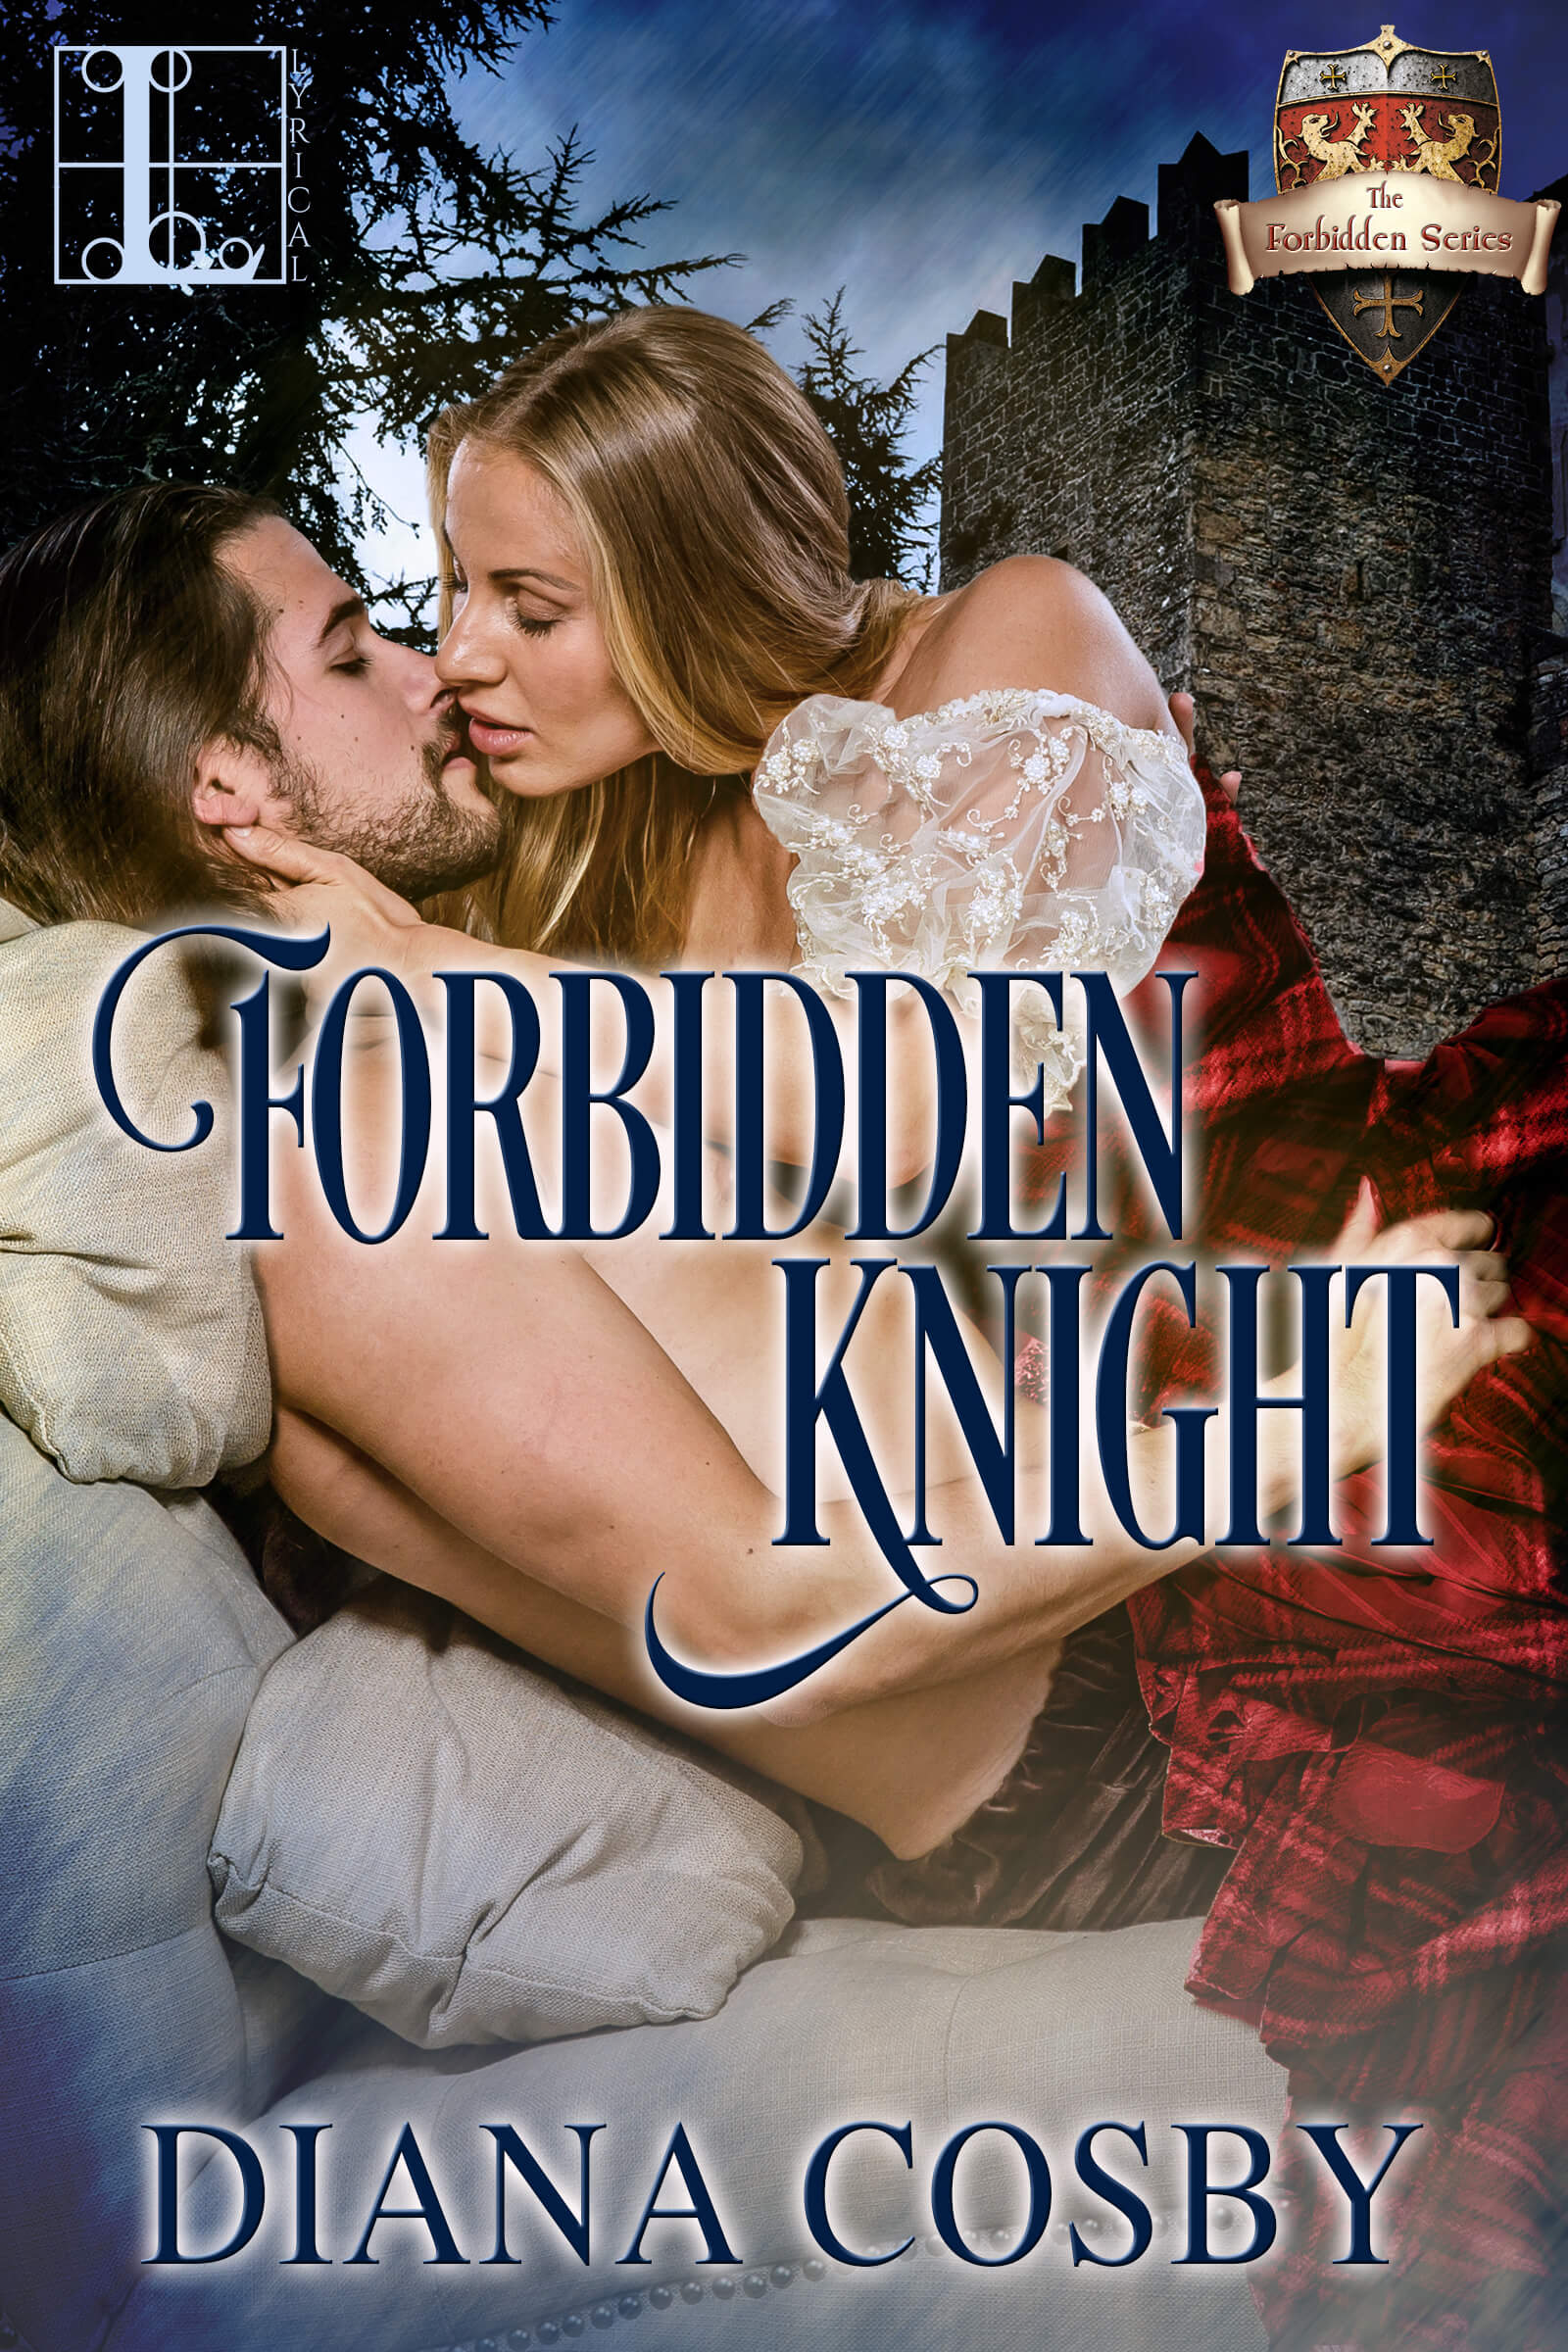 Guest Post: Diana Cosby's Forbidden Knight